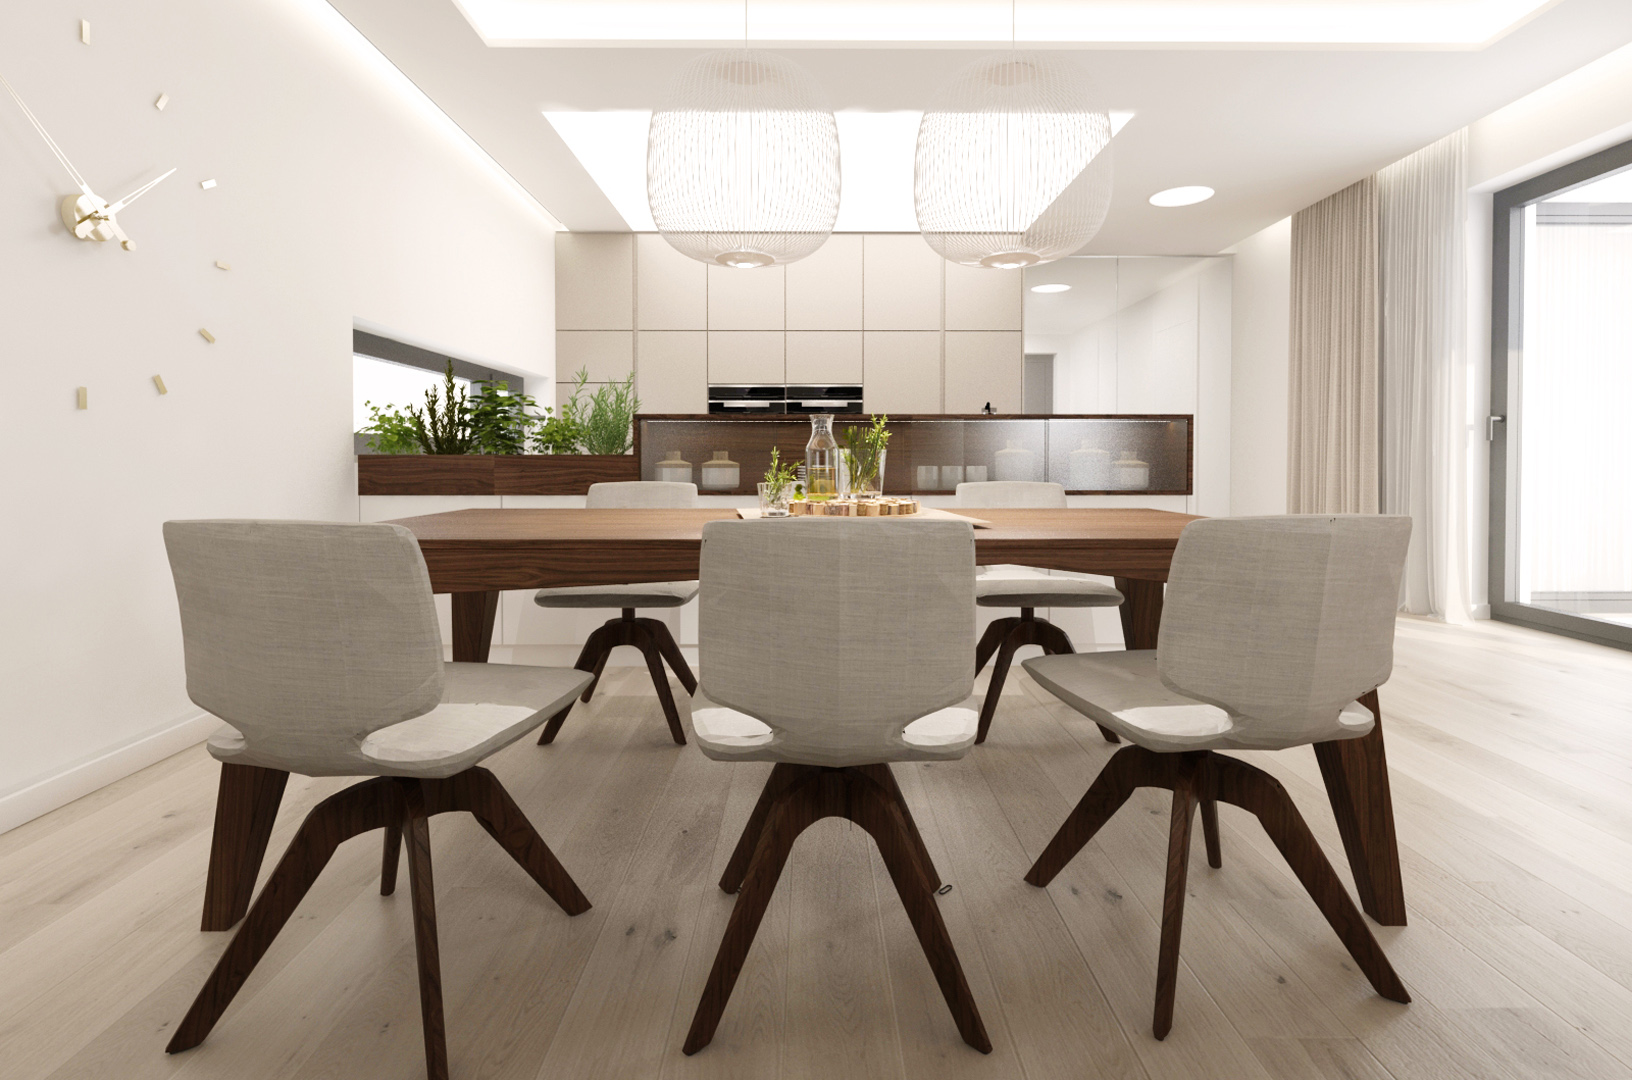 navrh jedalne, navrh kuchyne, navrh interieru kuchyne, navrh interieru, dizajn interieru, interierovy dizajner, interierovy dizajn, foscarini, spokes, dining room, kitchen design, interior design, team7 chair, aye chair, interior designer